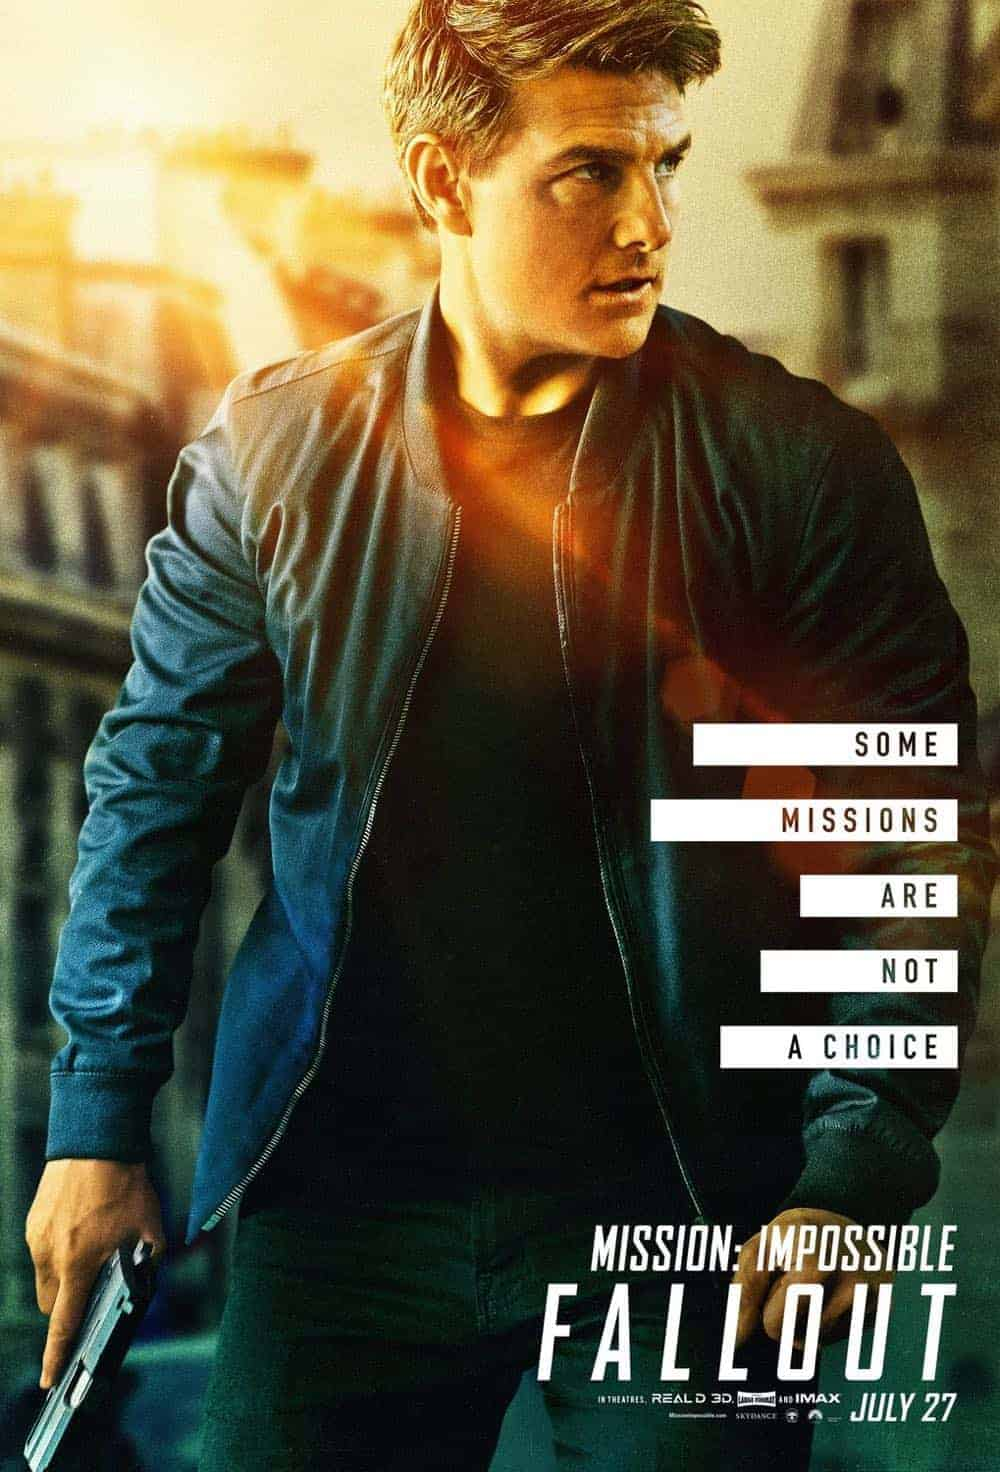 Mission Impossible Fallout Character Movie Poster Tom Cruise